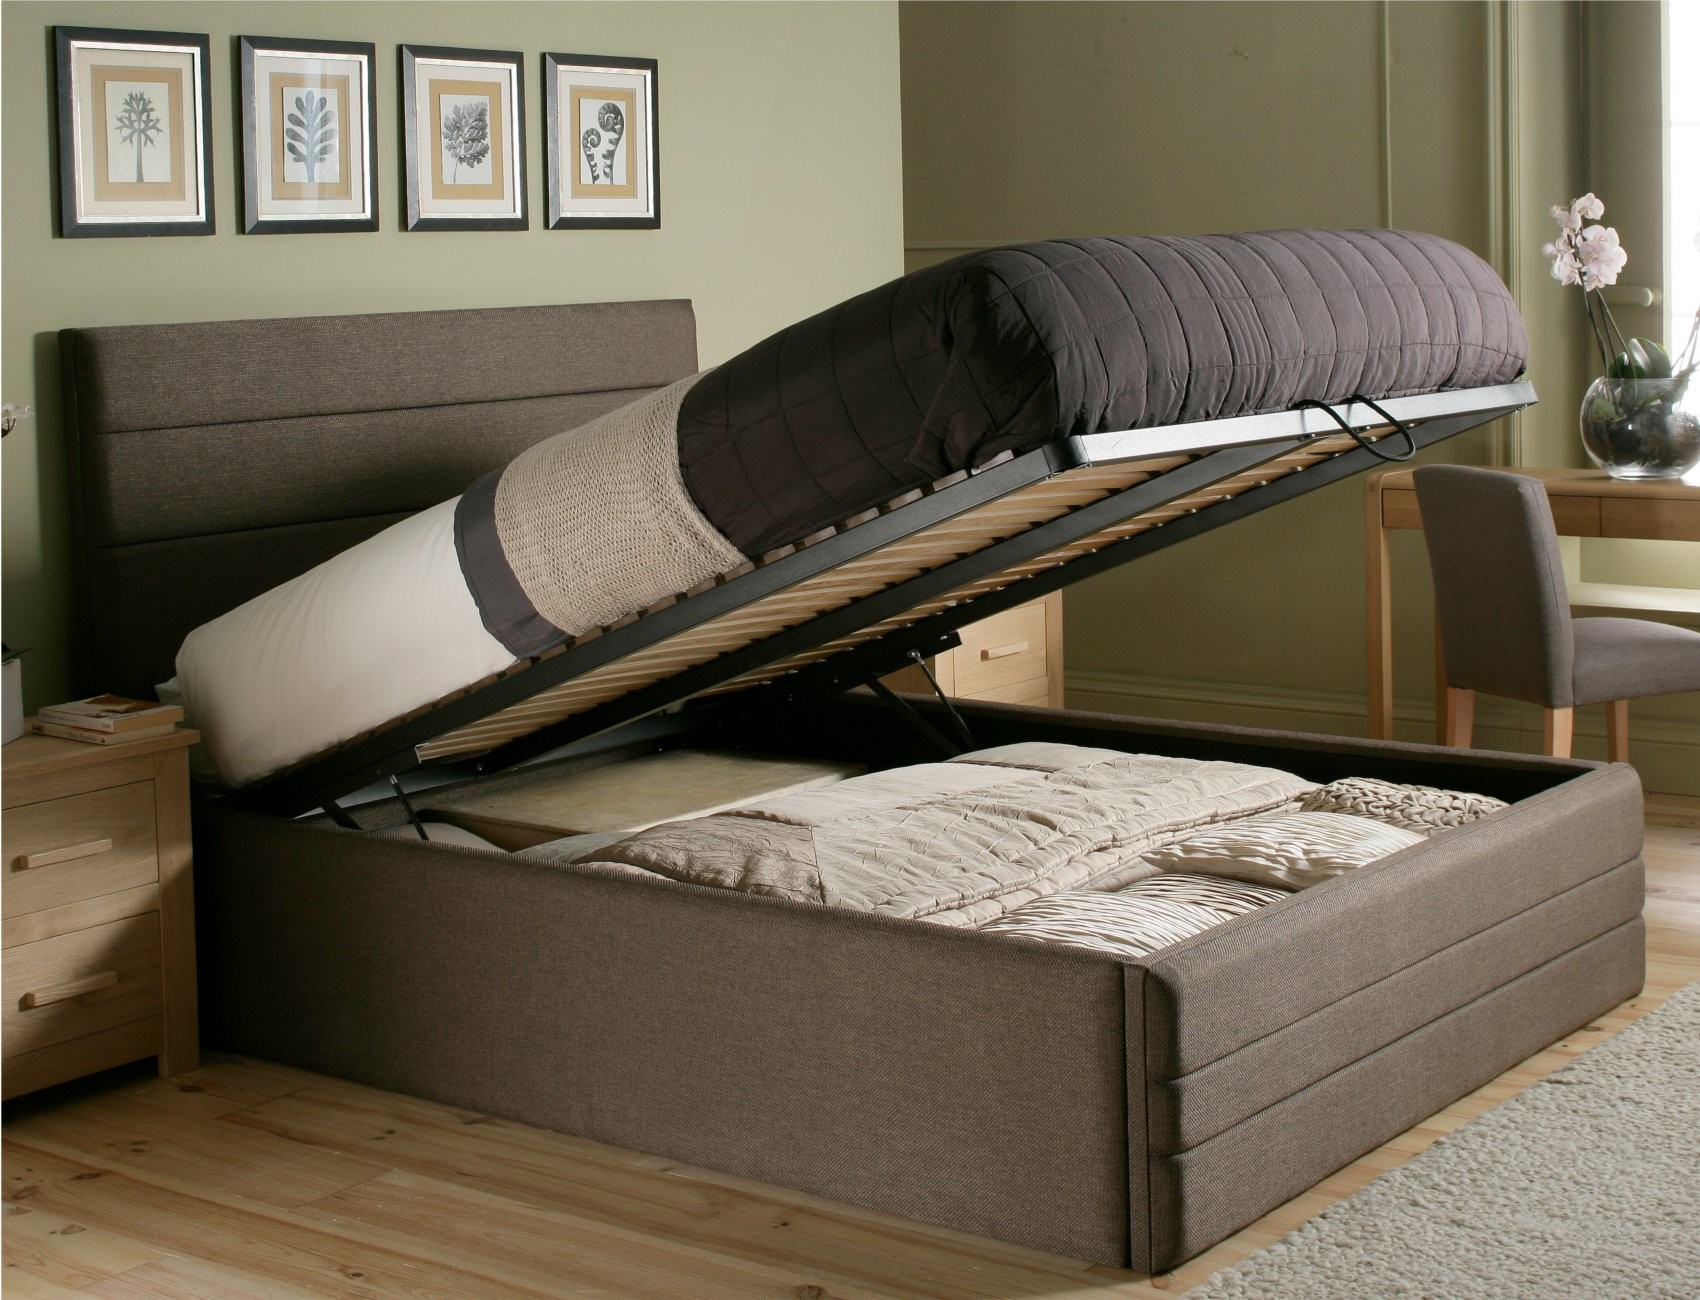 10 Different Types Of Beds For Your Home